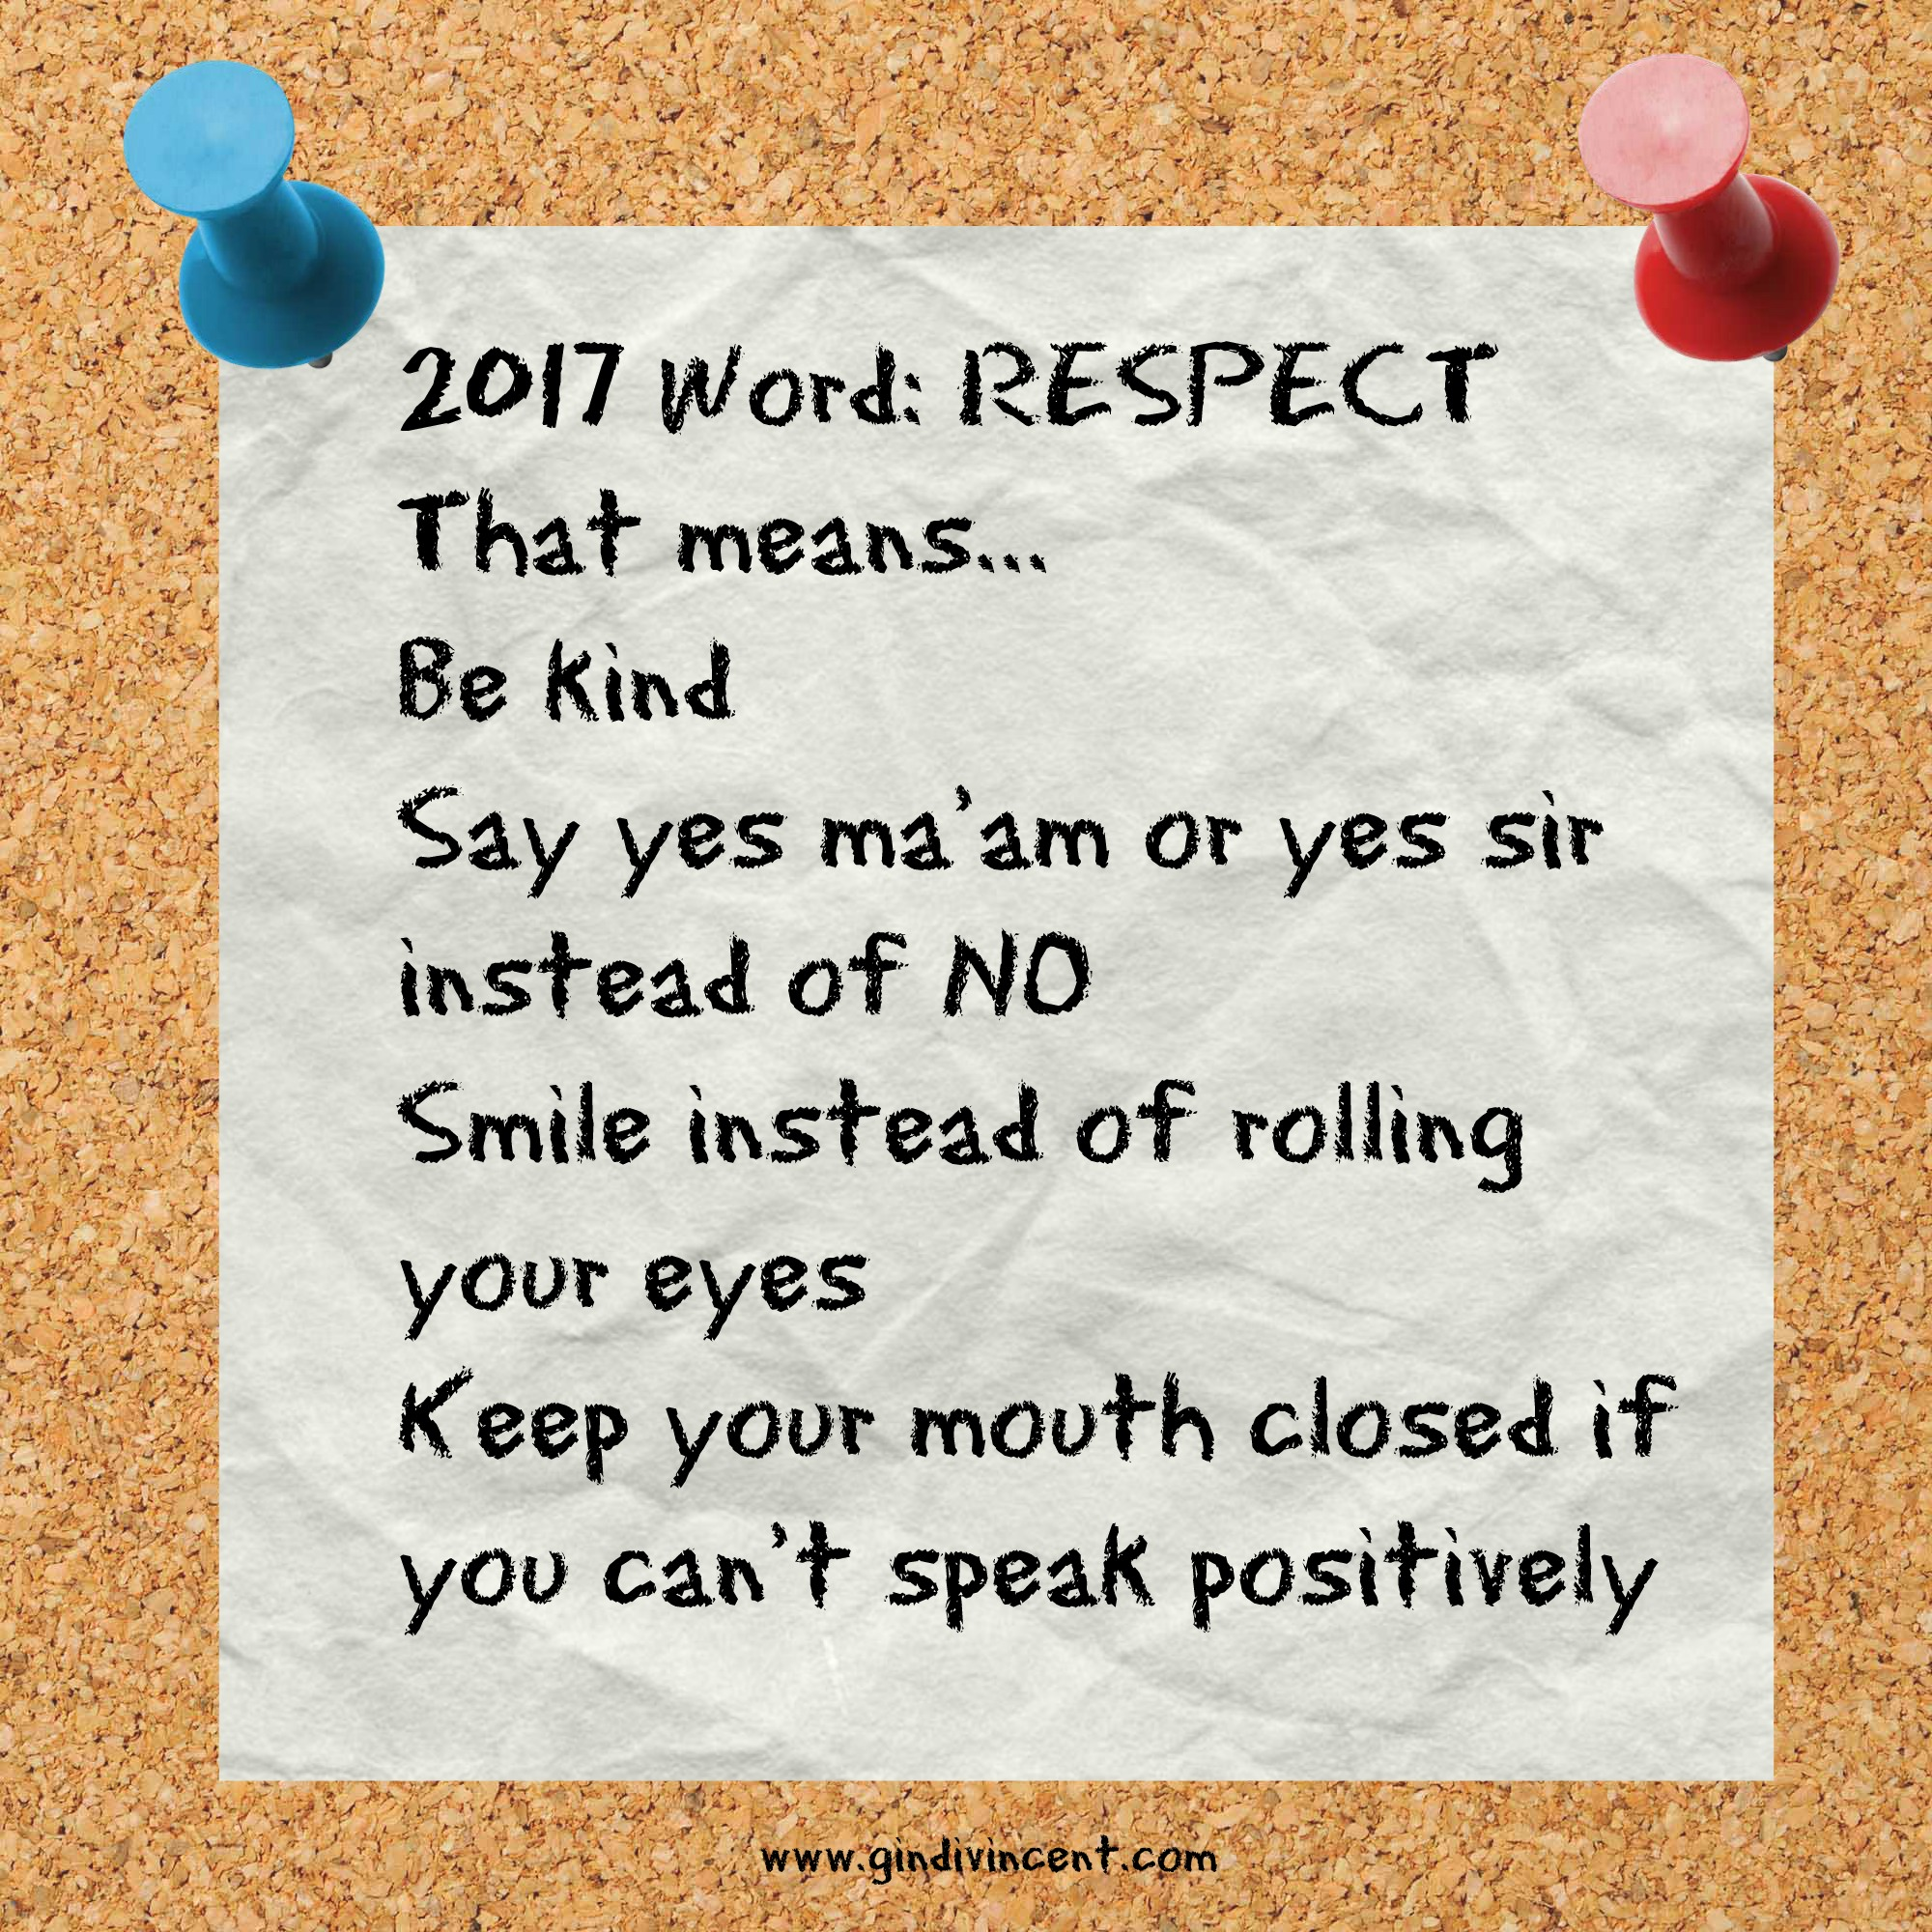 2017 Family Word: RESPECT   Gindi Vincent